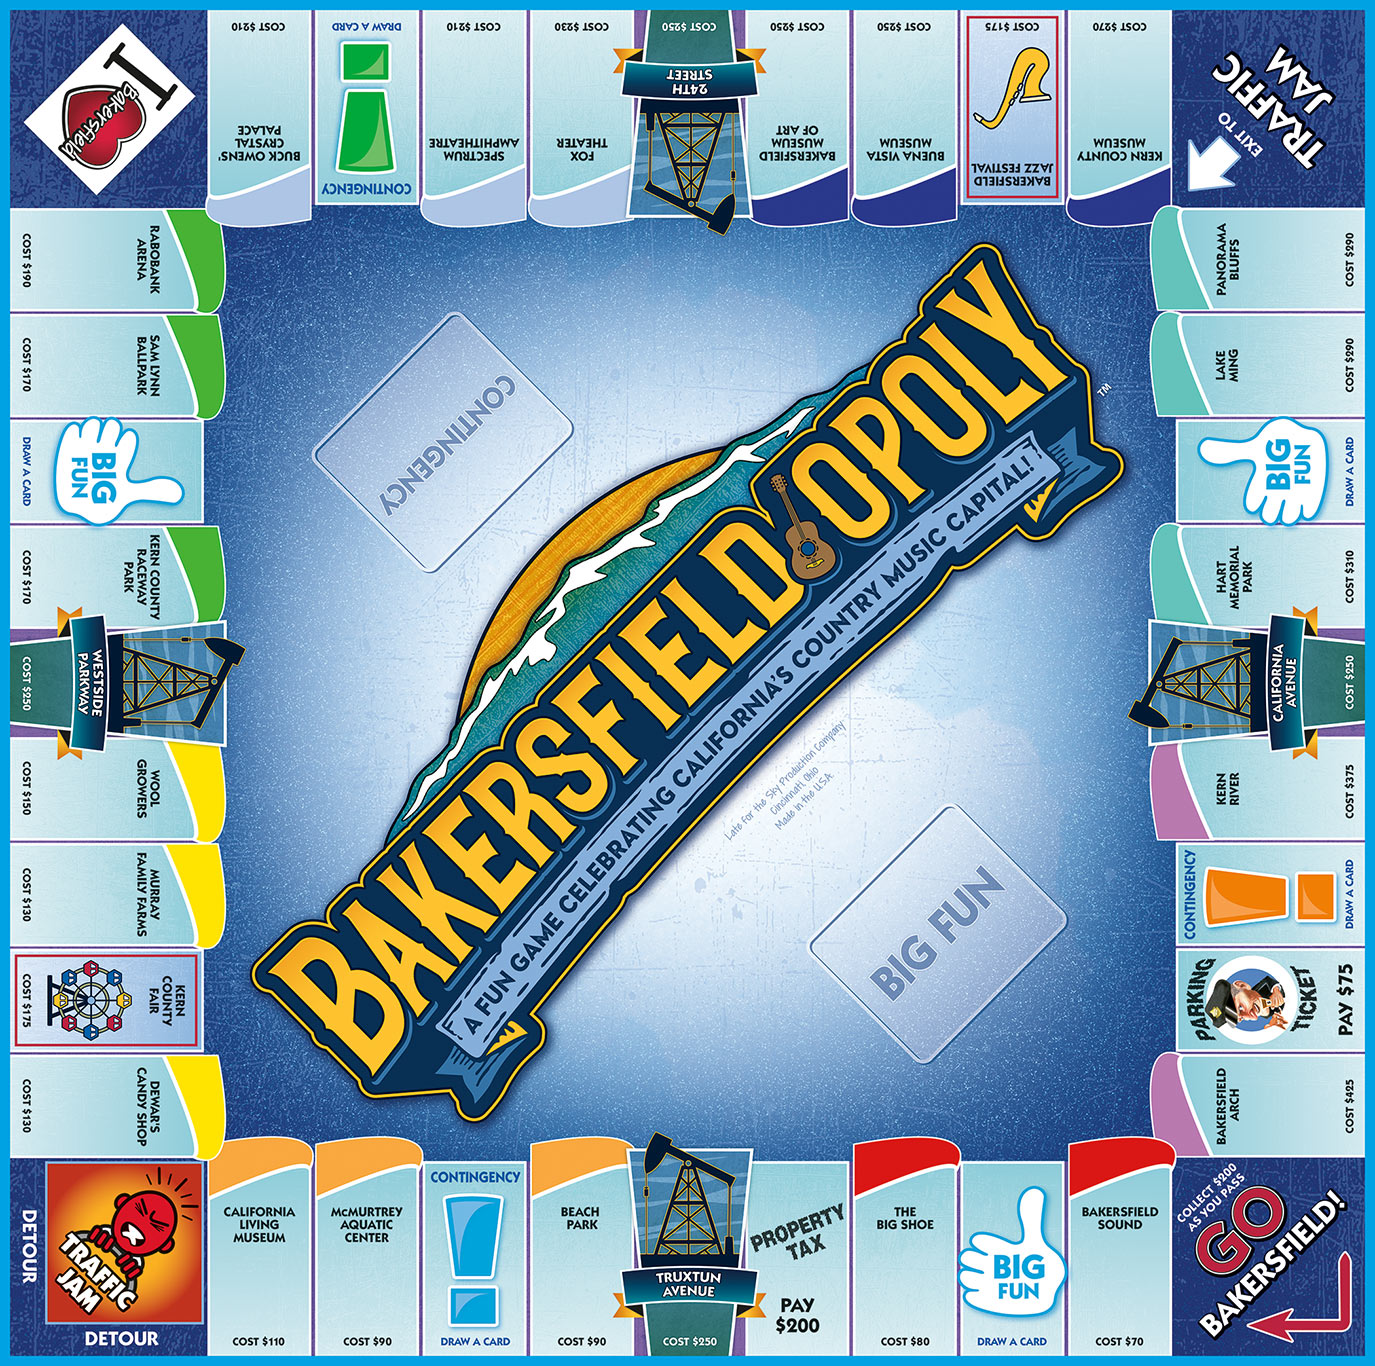 BAKERSFIELD-OPOLY Board Game